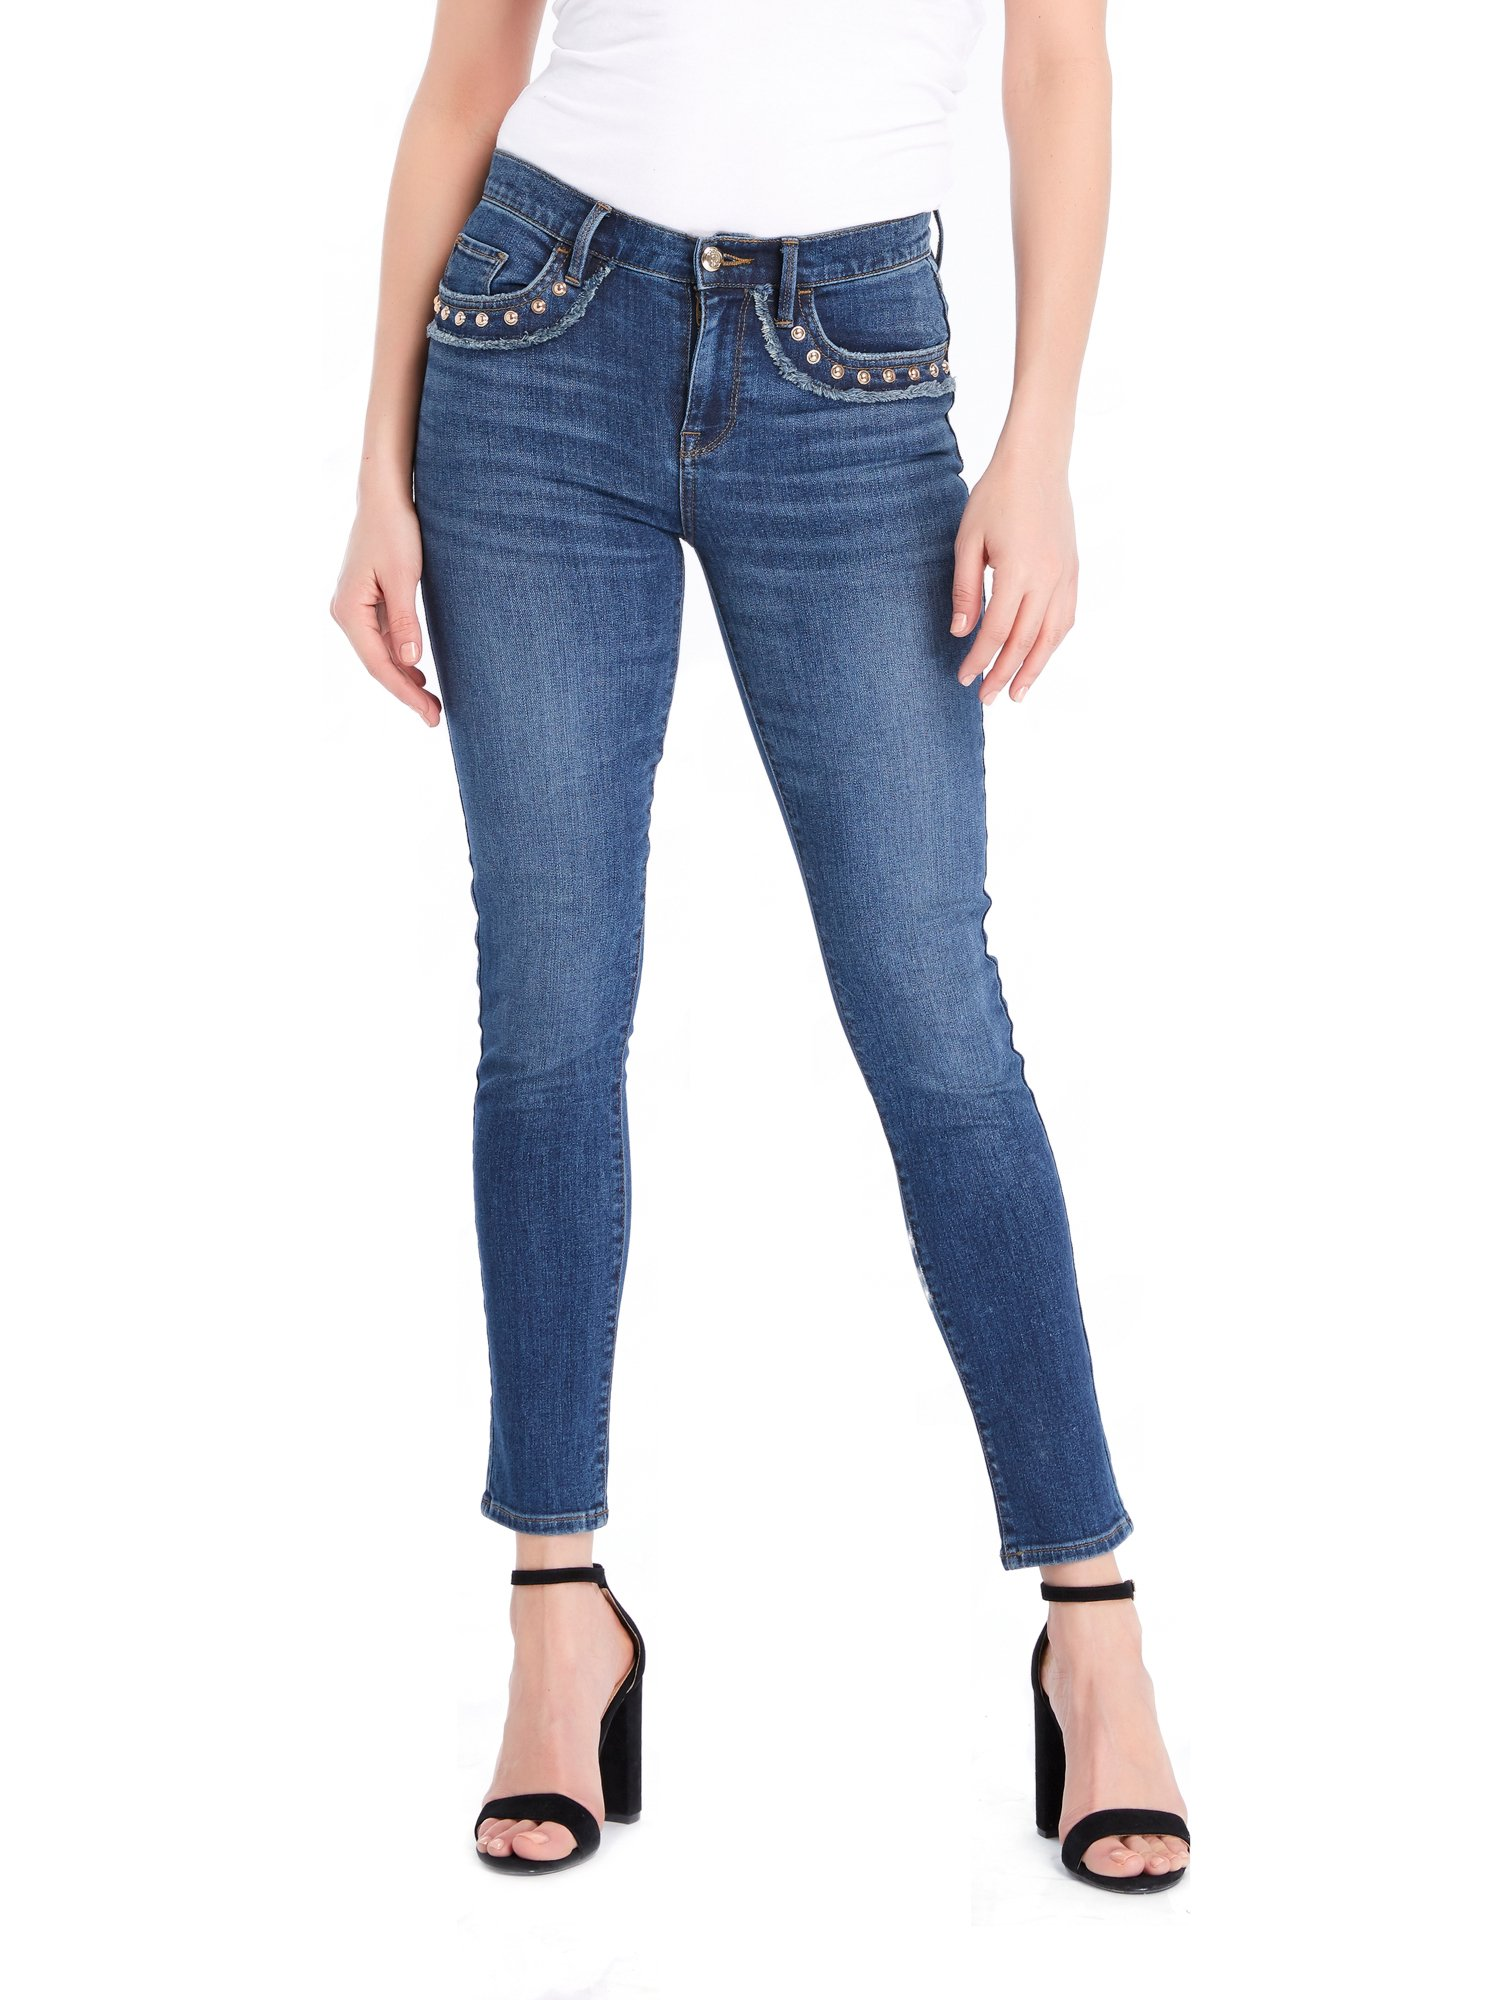 Juicy Couture BLACK LABEL Women's Studded Skinny Denim Jean, Medium Wash, 25 by Juicy Couture